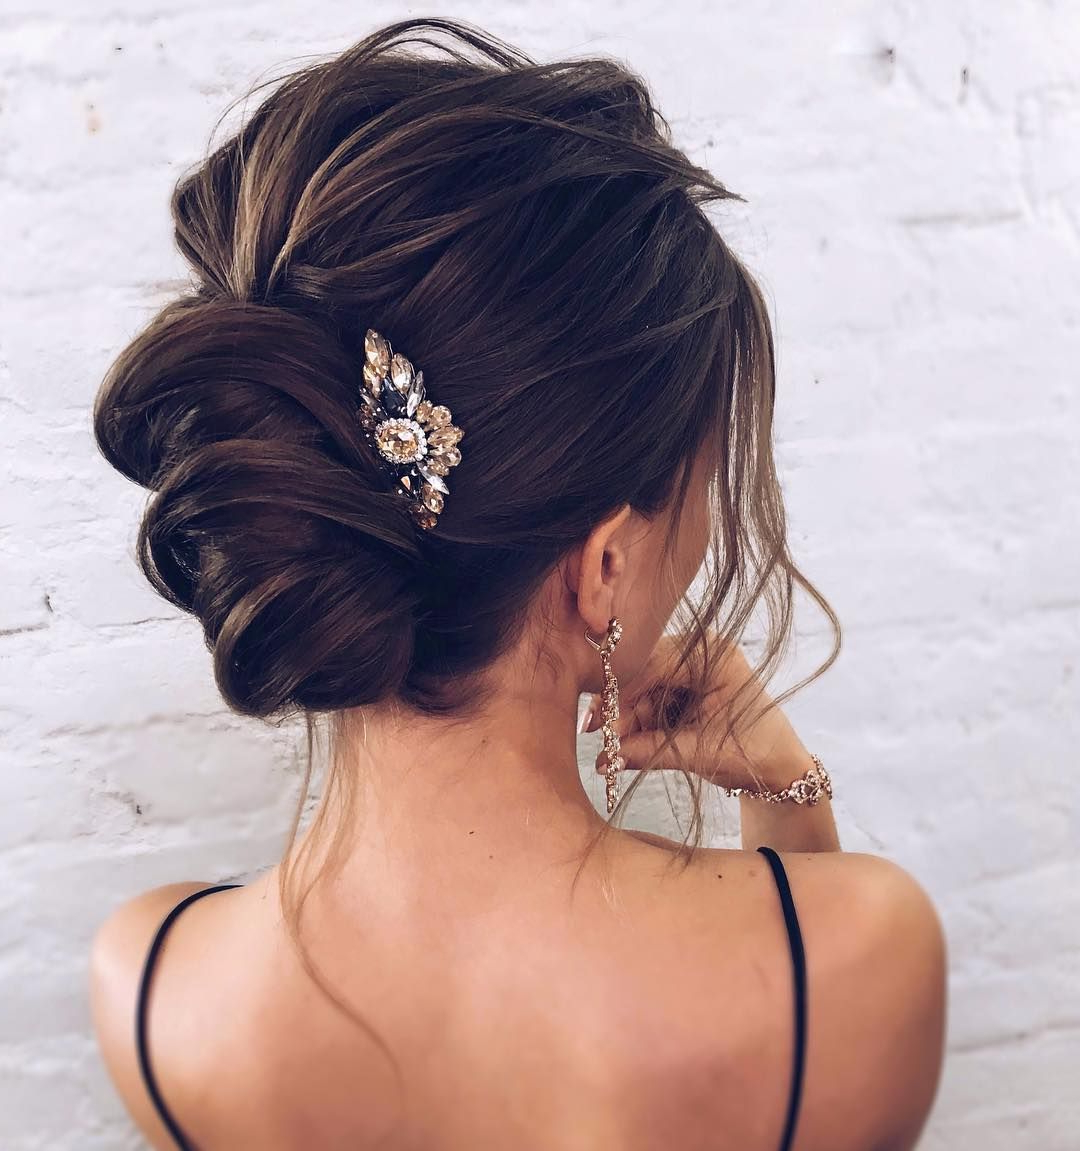 Trendy Wedding Medium Hairstyles Inside The Most Romantic Bridal Updos Wedding Hairstyles (View 14 of 20)